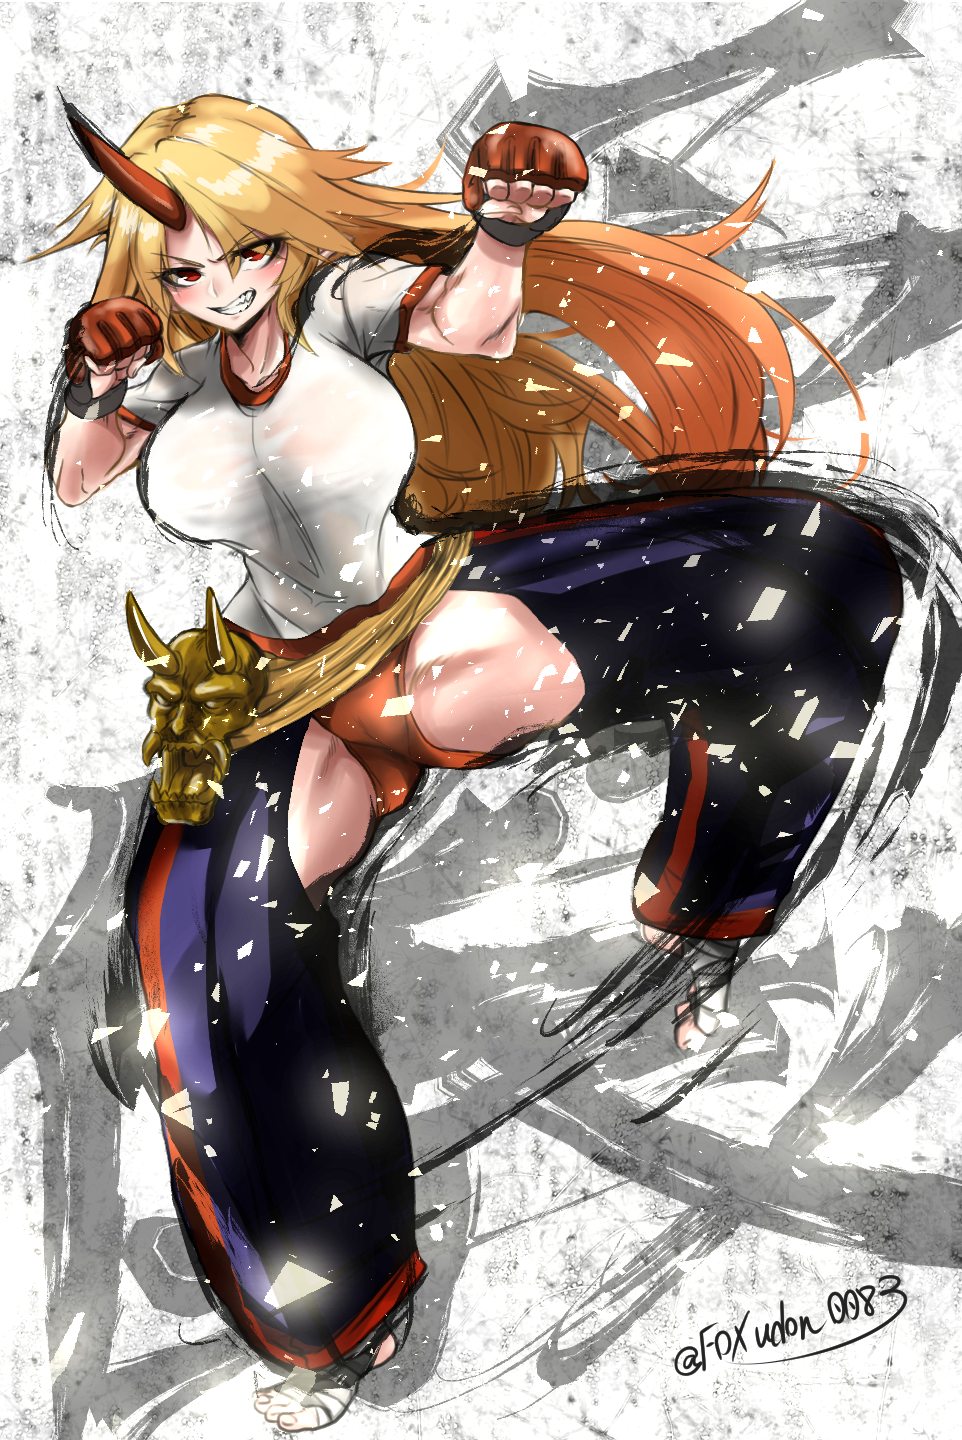 1girl blonde_hair breasts buruma chaps clenched_hands clenched_teeth fox_udon full_body gym_shirt highres horn hoshiguma_yuugi kicking large_breasts long_hair looking_at_viewer red_eyes shirt short_sleeves smile solo standing standing_on_one_leg teeth thighs touhou twitter_username very_long_hair